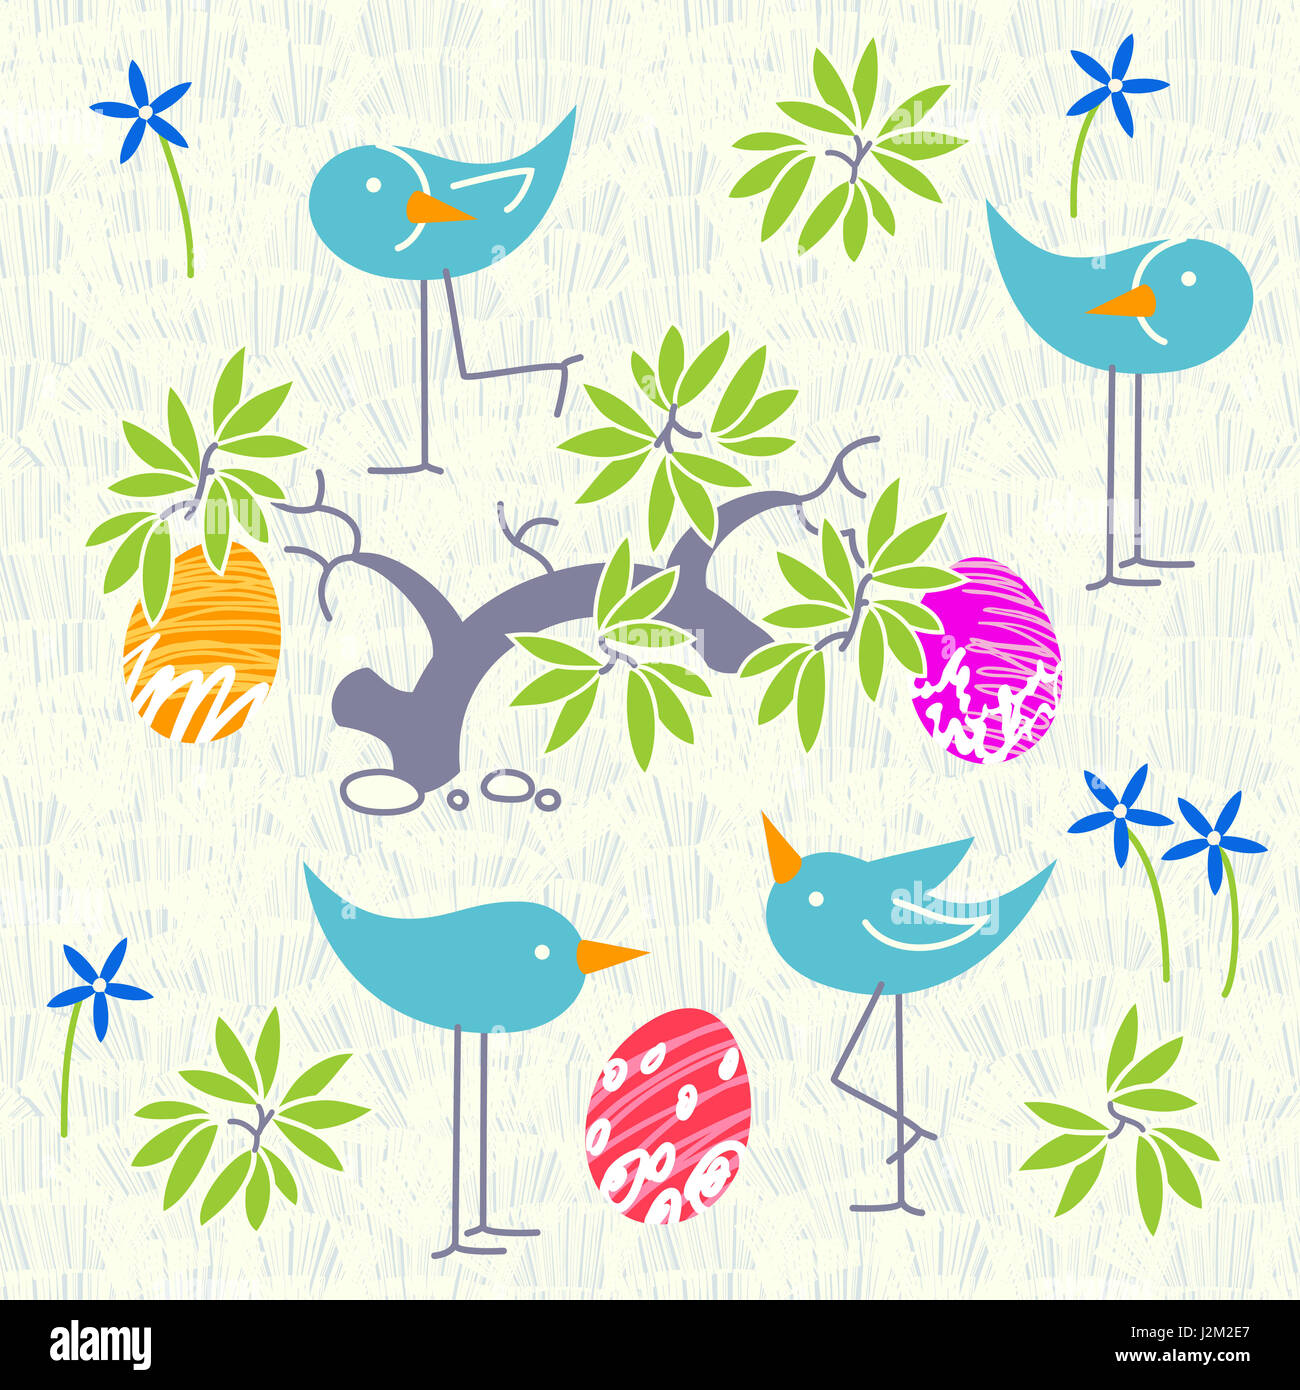 Cute birds baby shower invitation card design. Layout template Stock ...